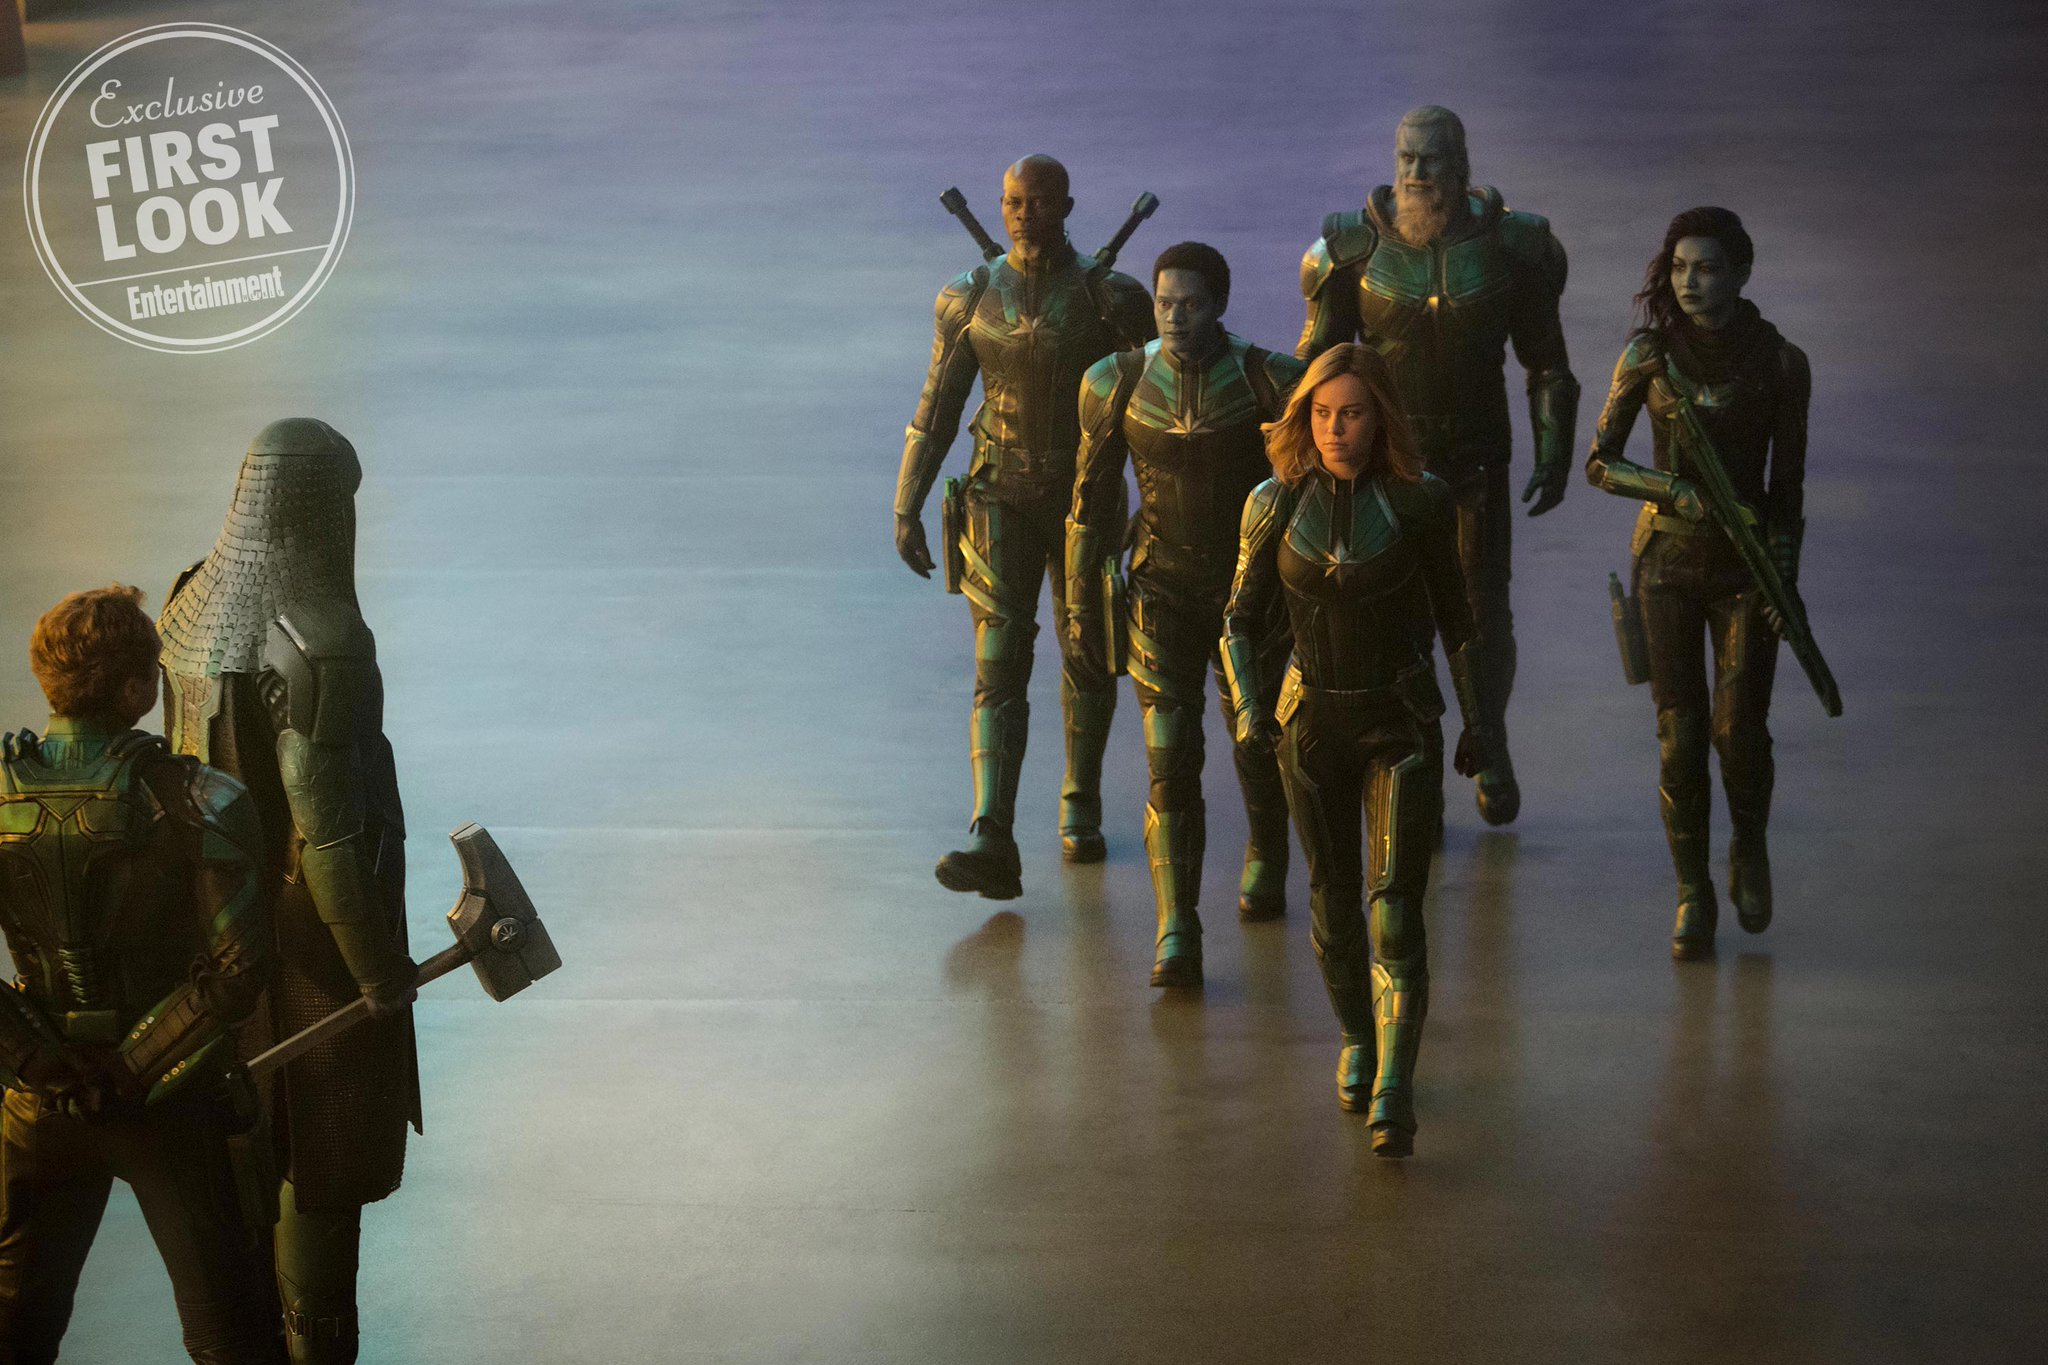 New Photos From Captain Marvel Feature The Skrulls Jude Law As Mar